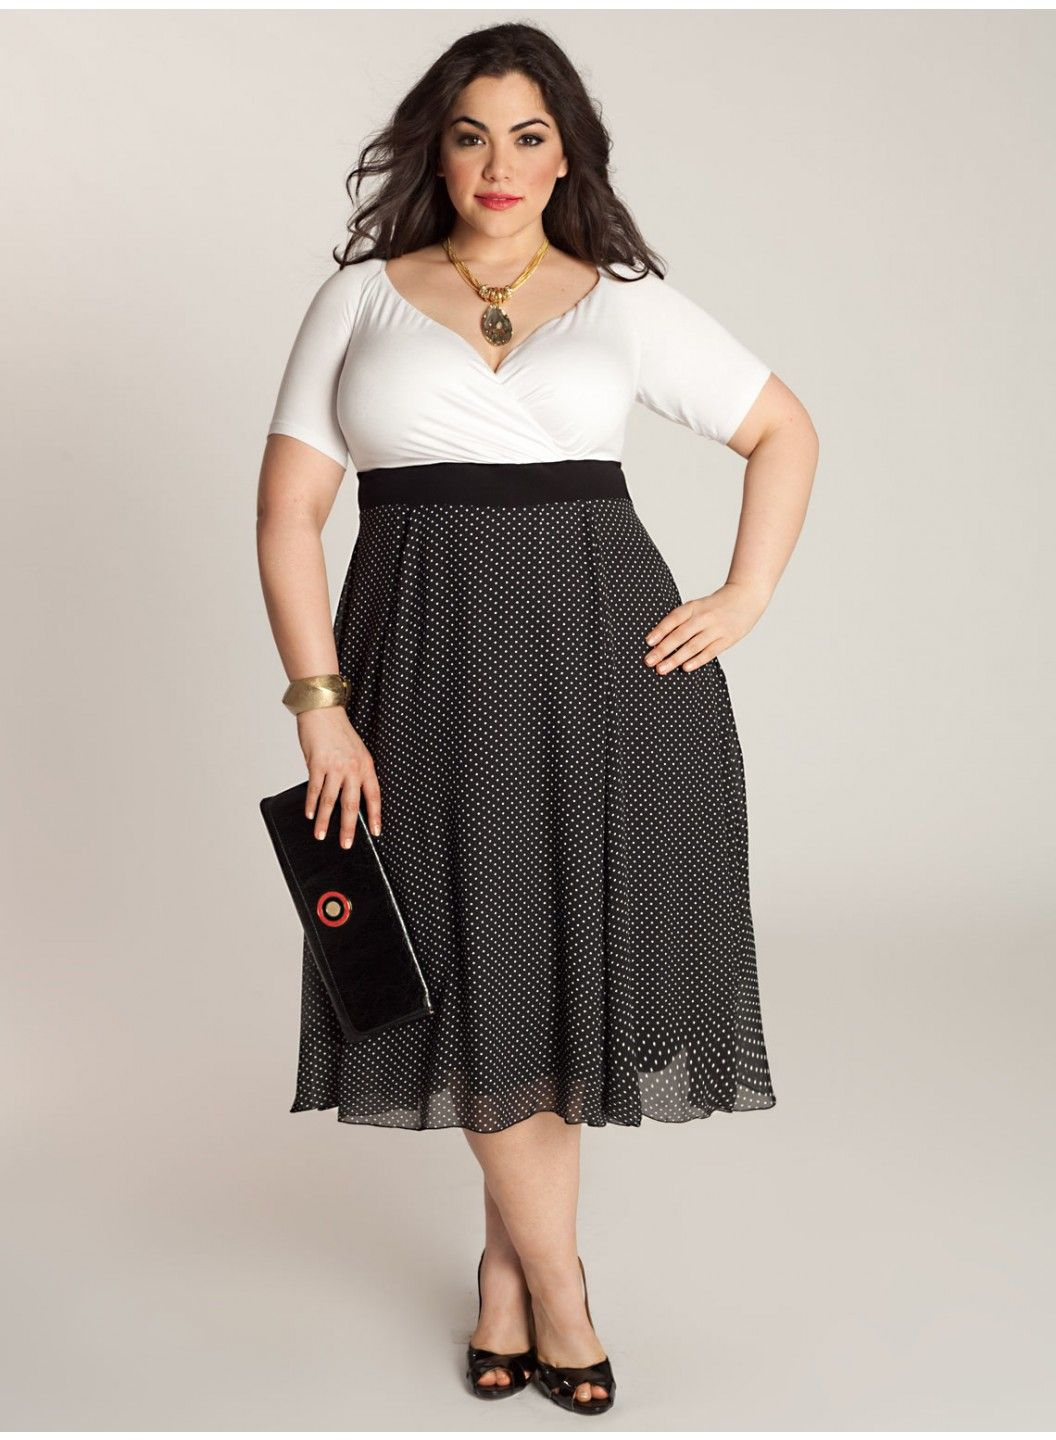 Lovely Plus Size Cocktail Dresses : Vintage Polca Best Plus Size ...